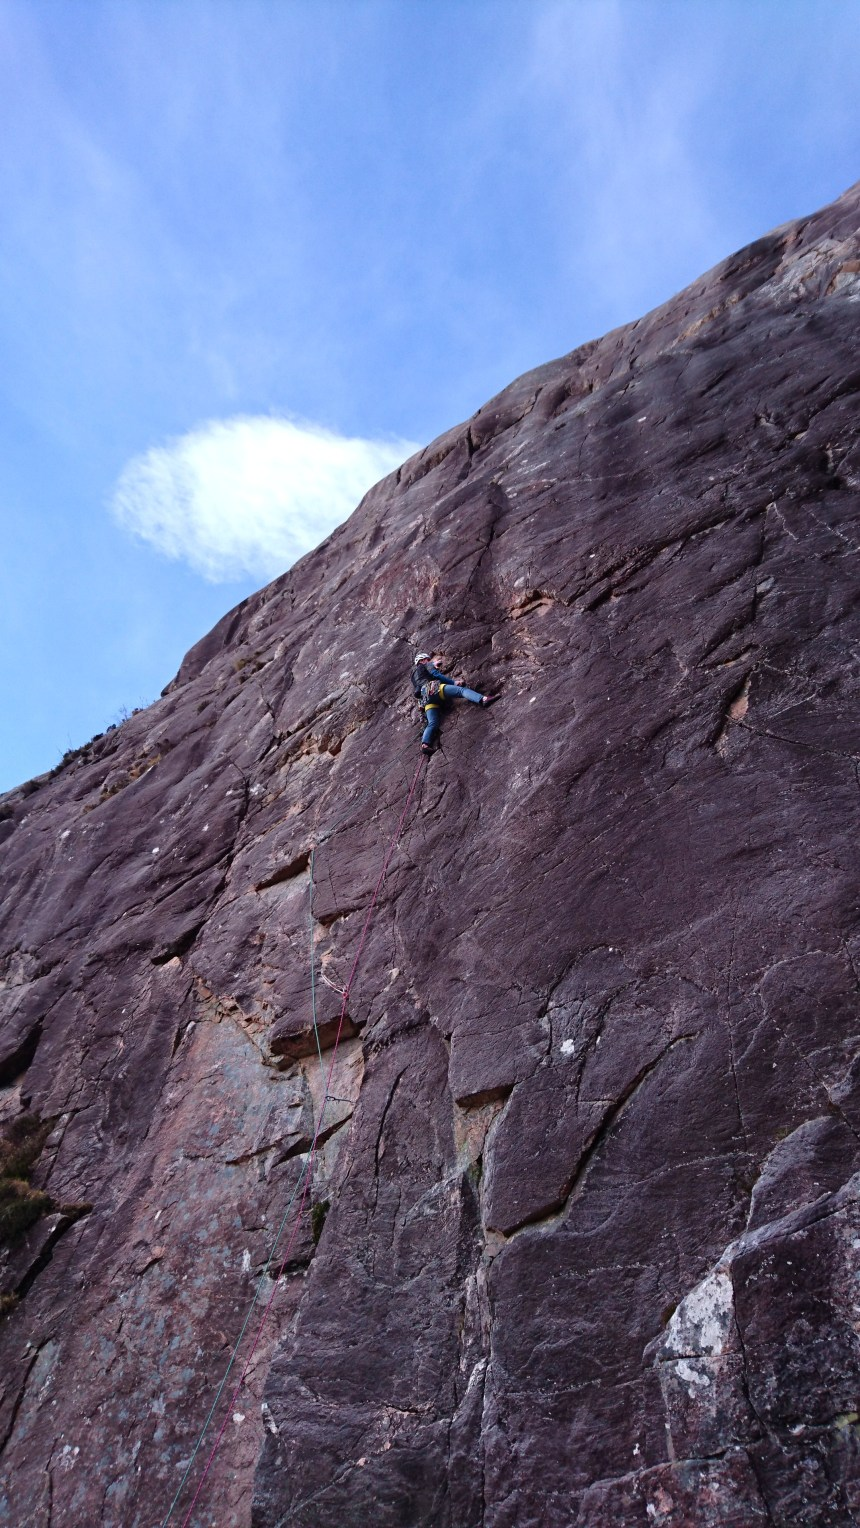 Joe on P1 (E2,5c) 'Northumberland Wall'. Tough climbing through the crux but on very positive holds. Good lead Joe.